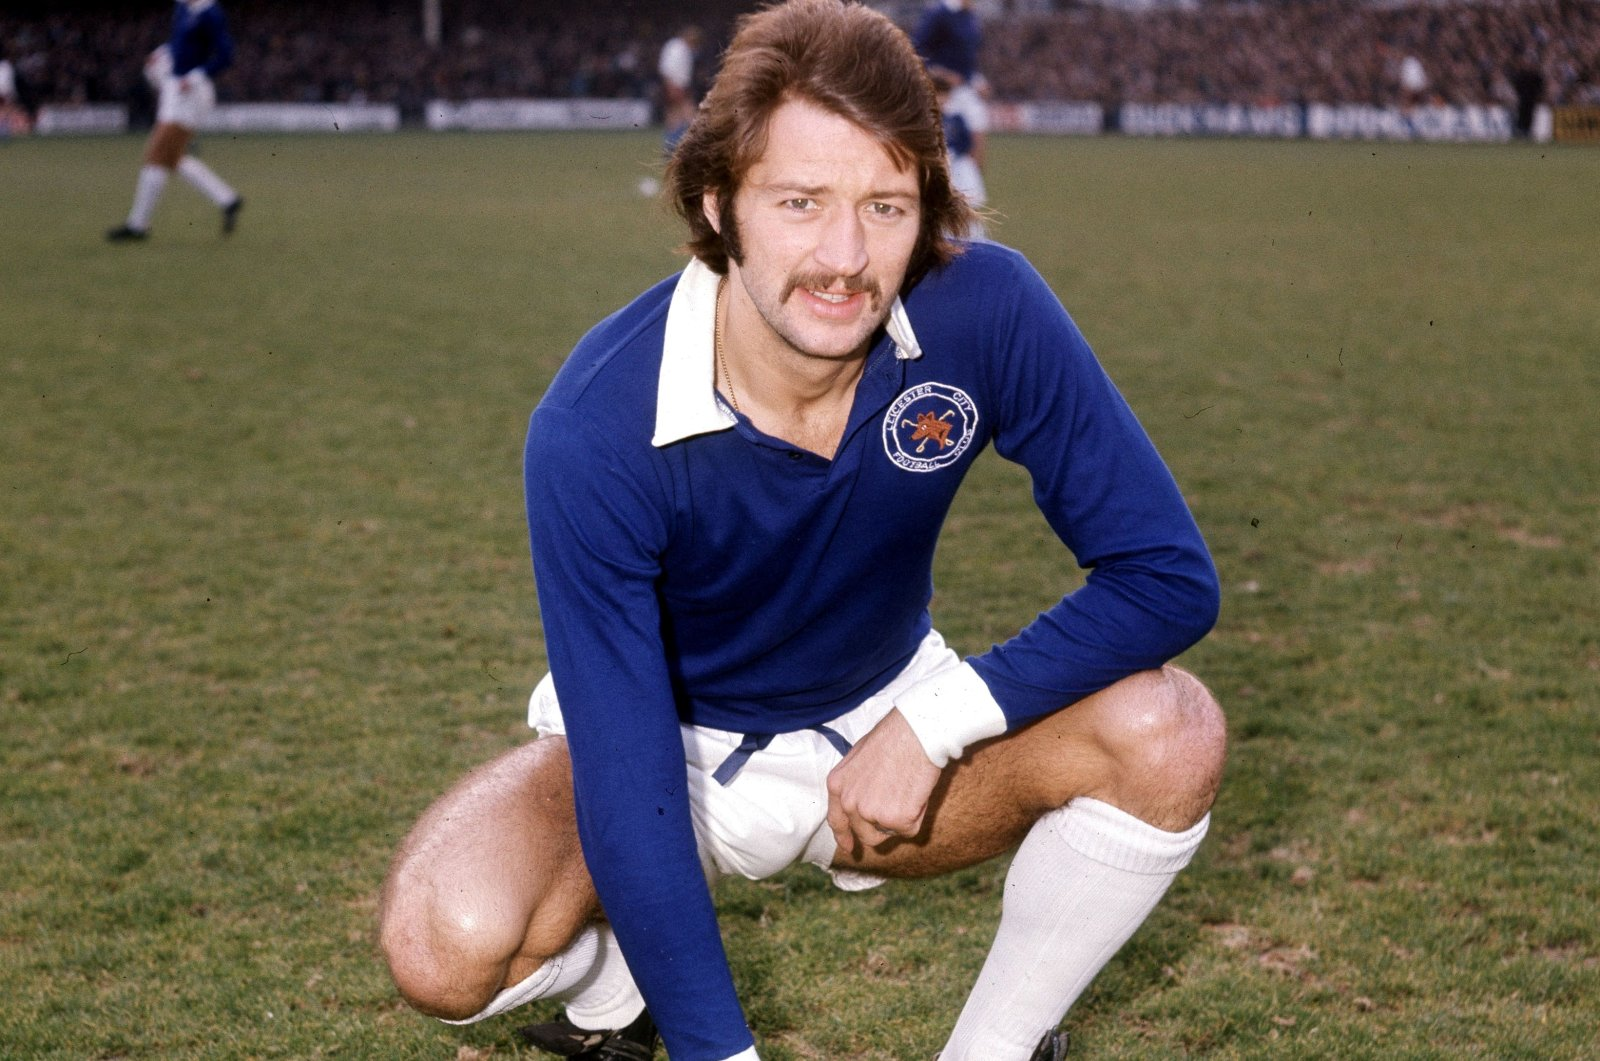 Former England and Leicester City striker Frank Worthington. (Reuters Photo)